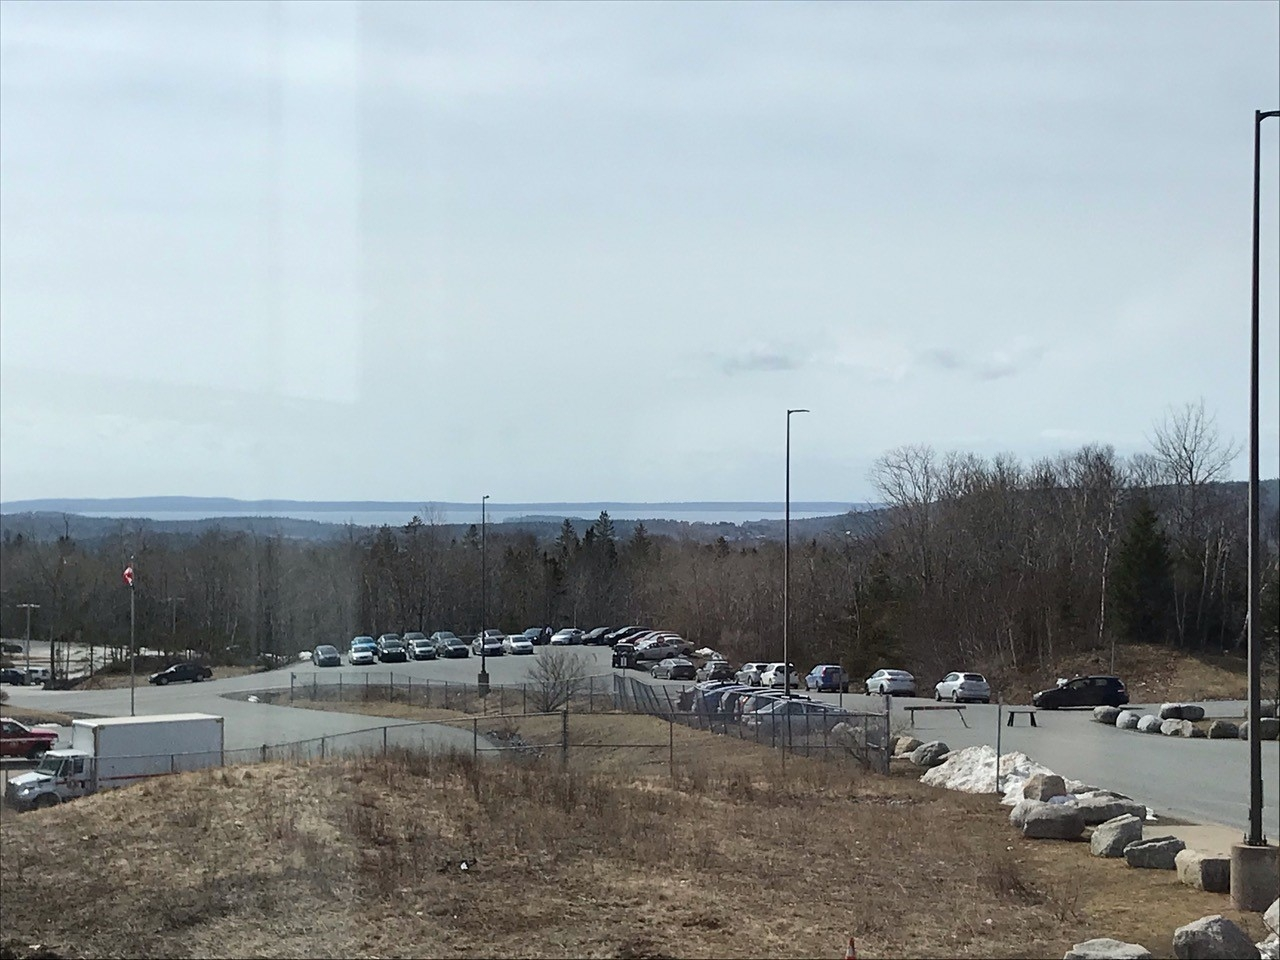 Parking lot with ocean in the background